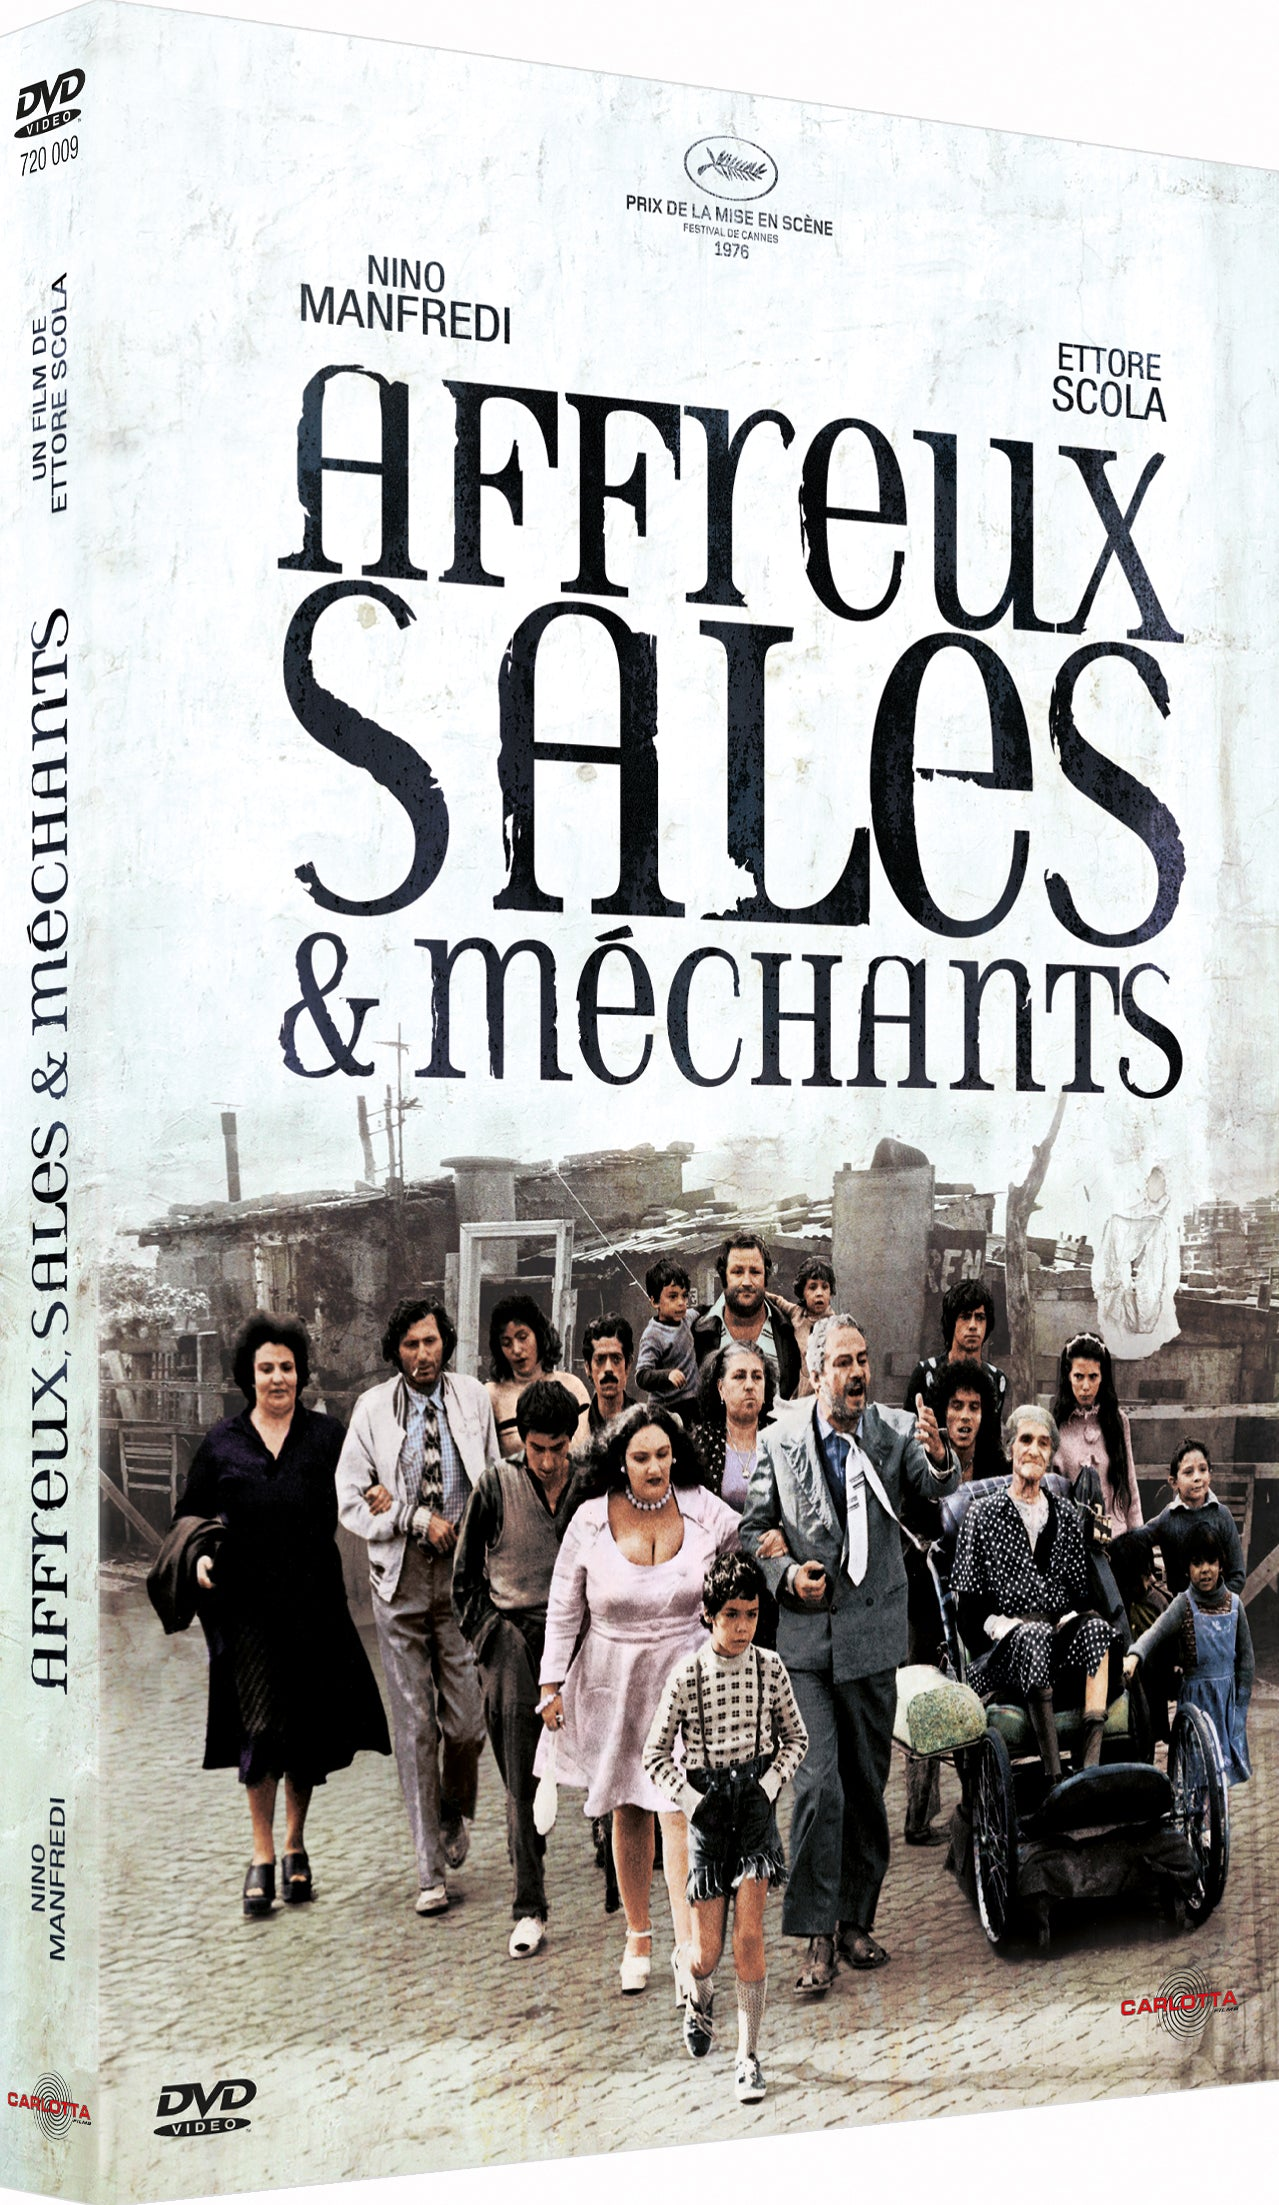 Affreux, sales et méchants d'Ettore Scola - CARLOTTA FILMS - La Boutique